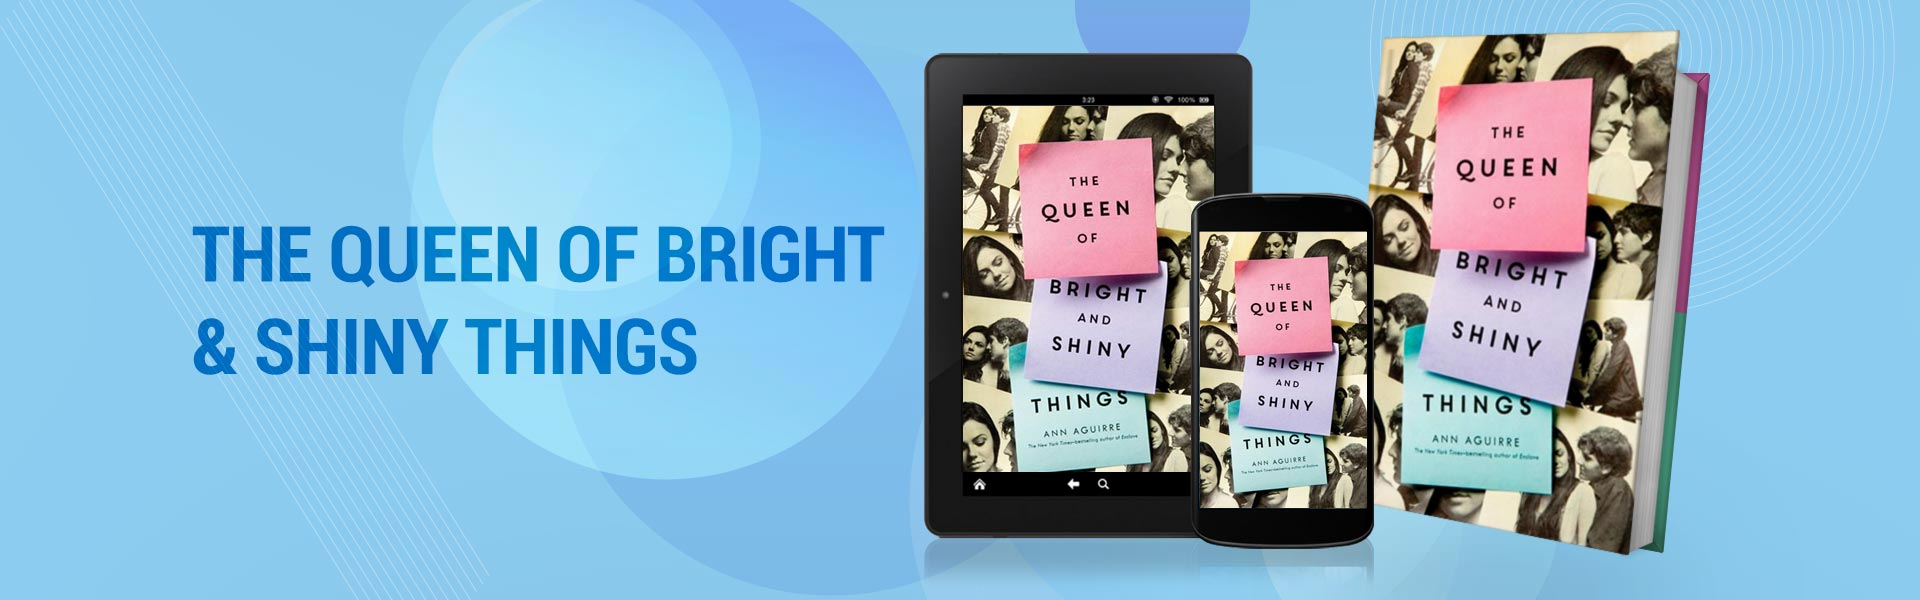 THE-QUEEN-OF-BRIGHT-&-SHINY-THINGS